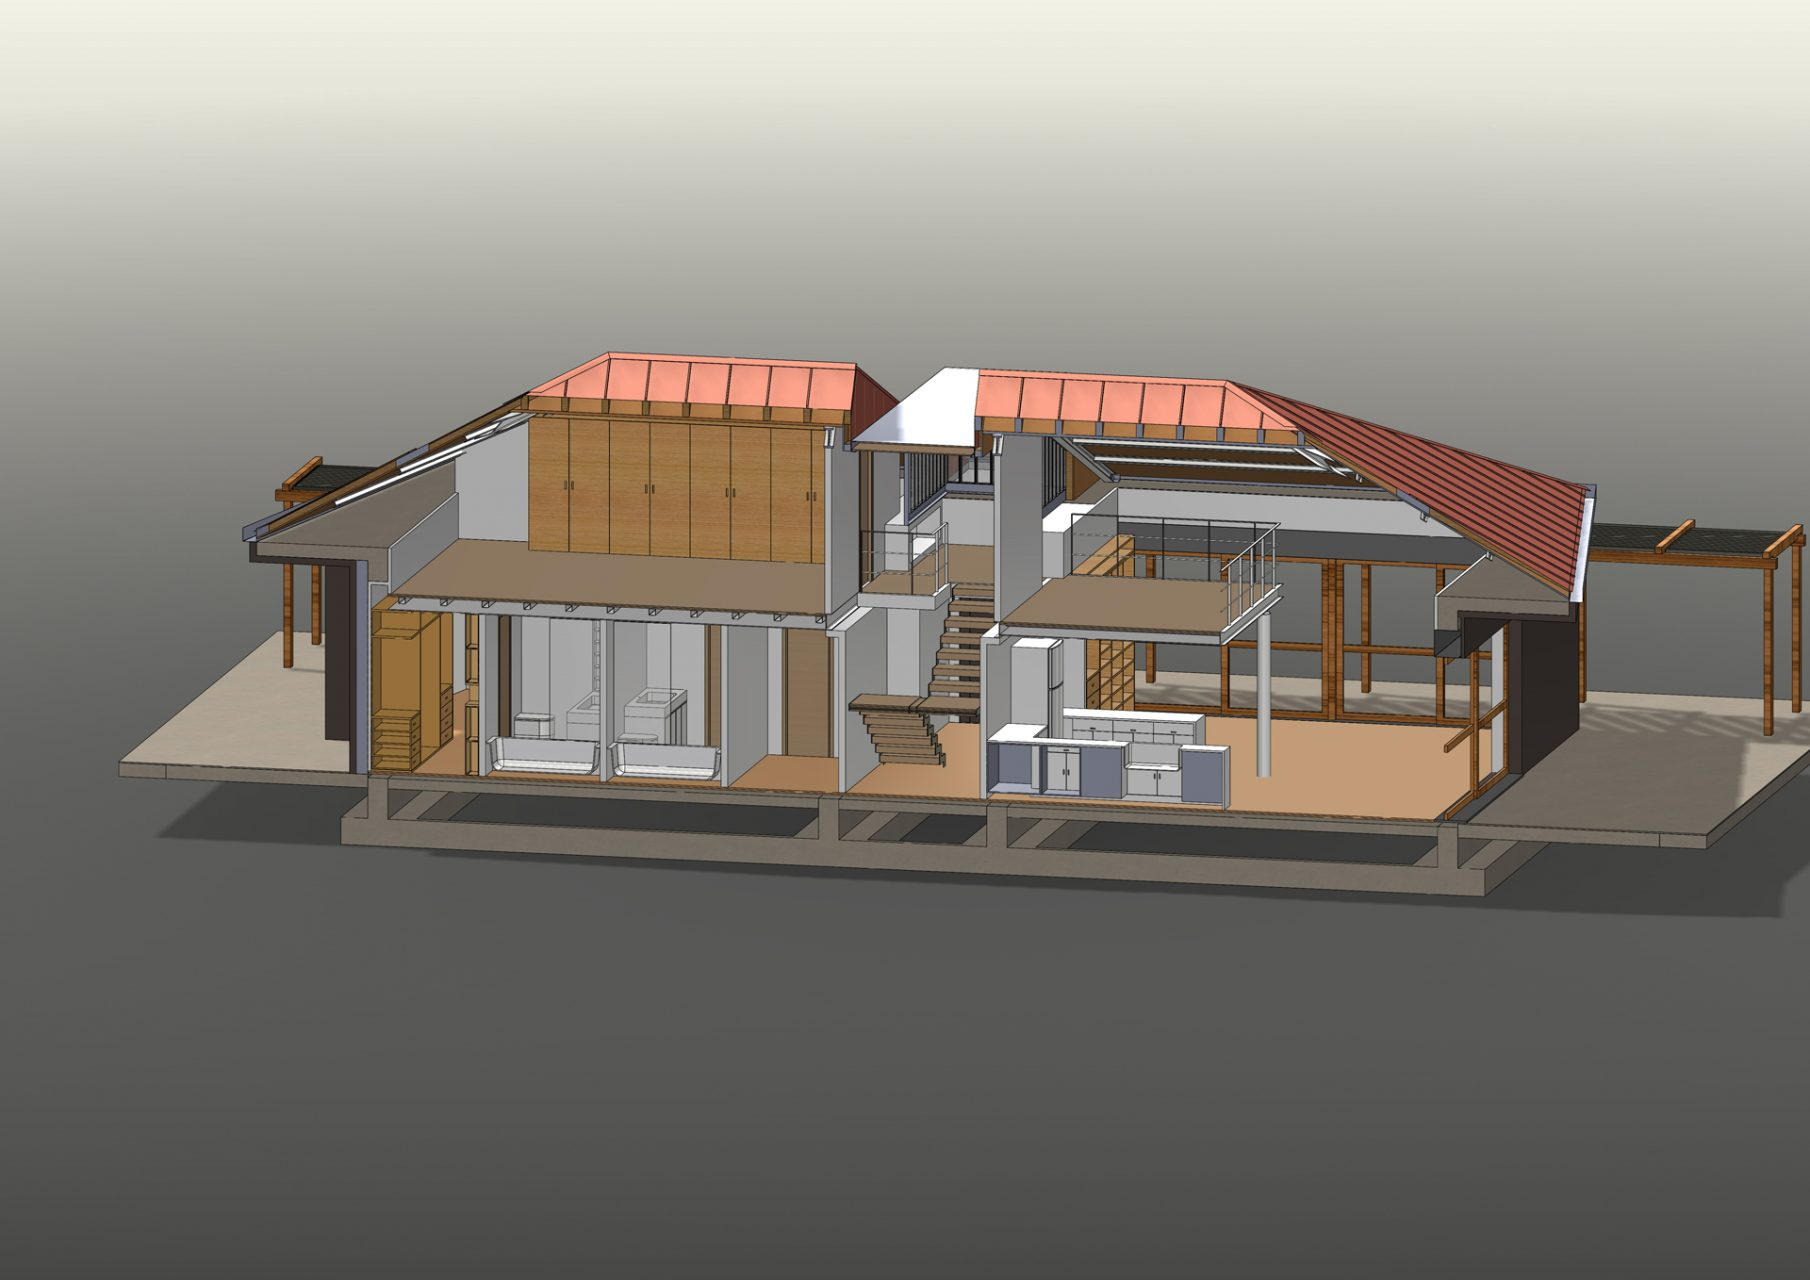 KL HOUSE 09 - axonometric view sectioned model - longwise